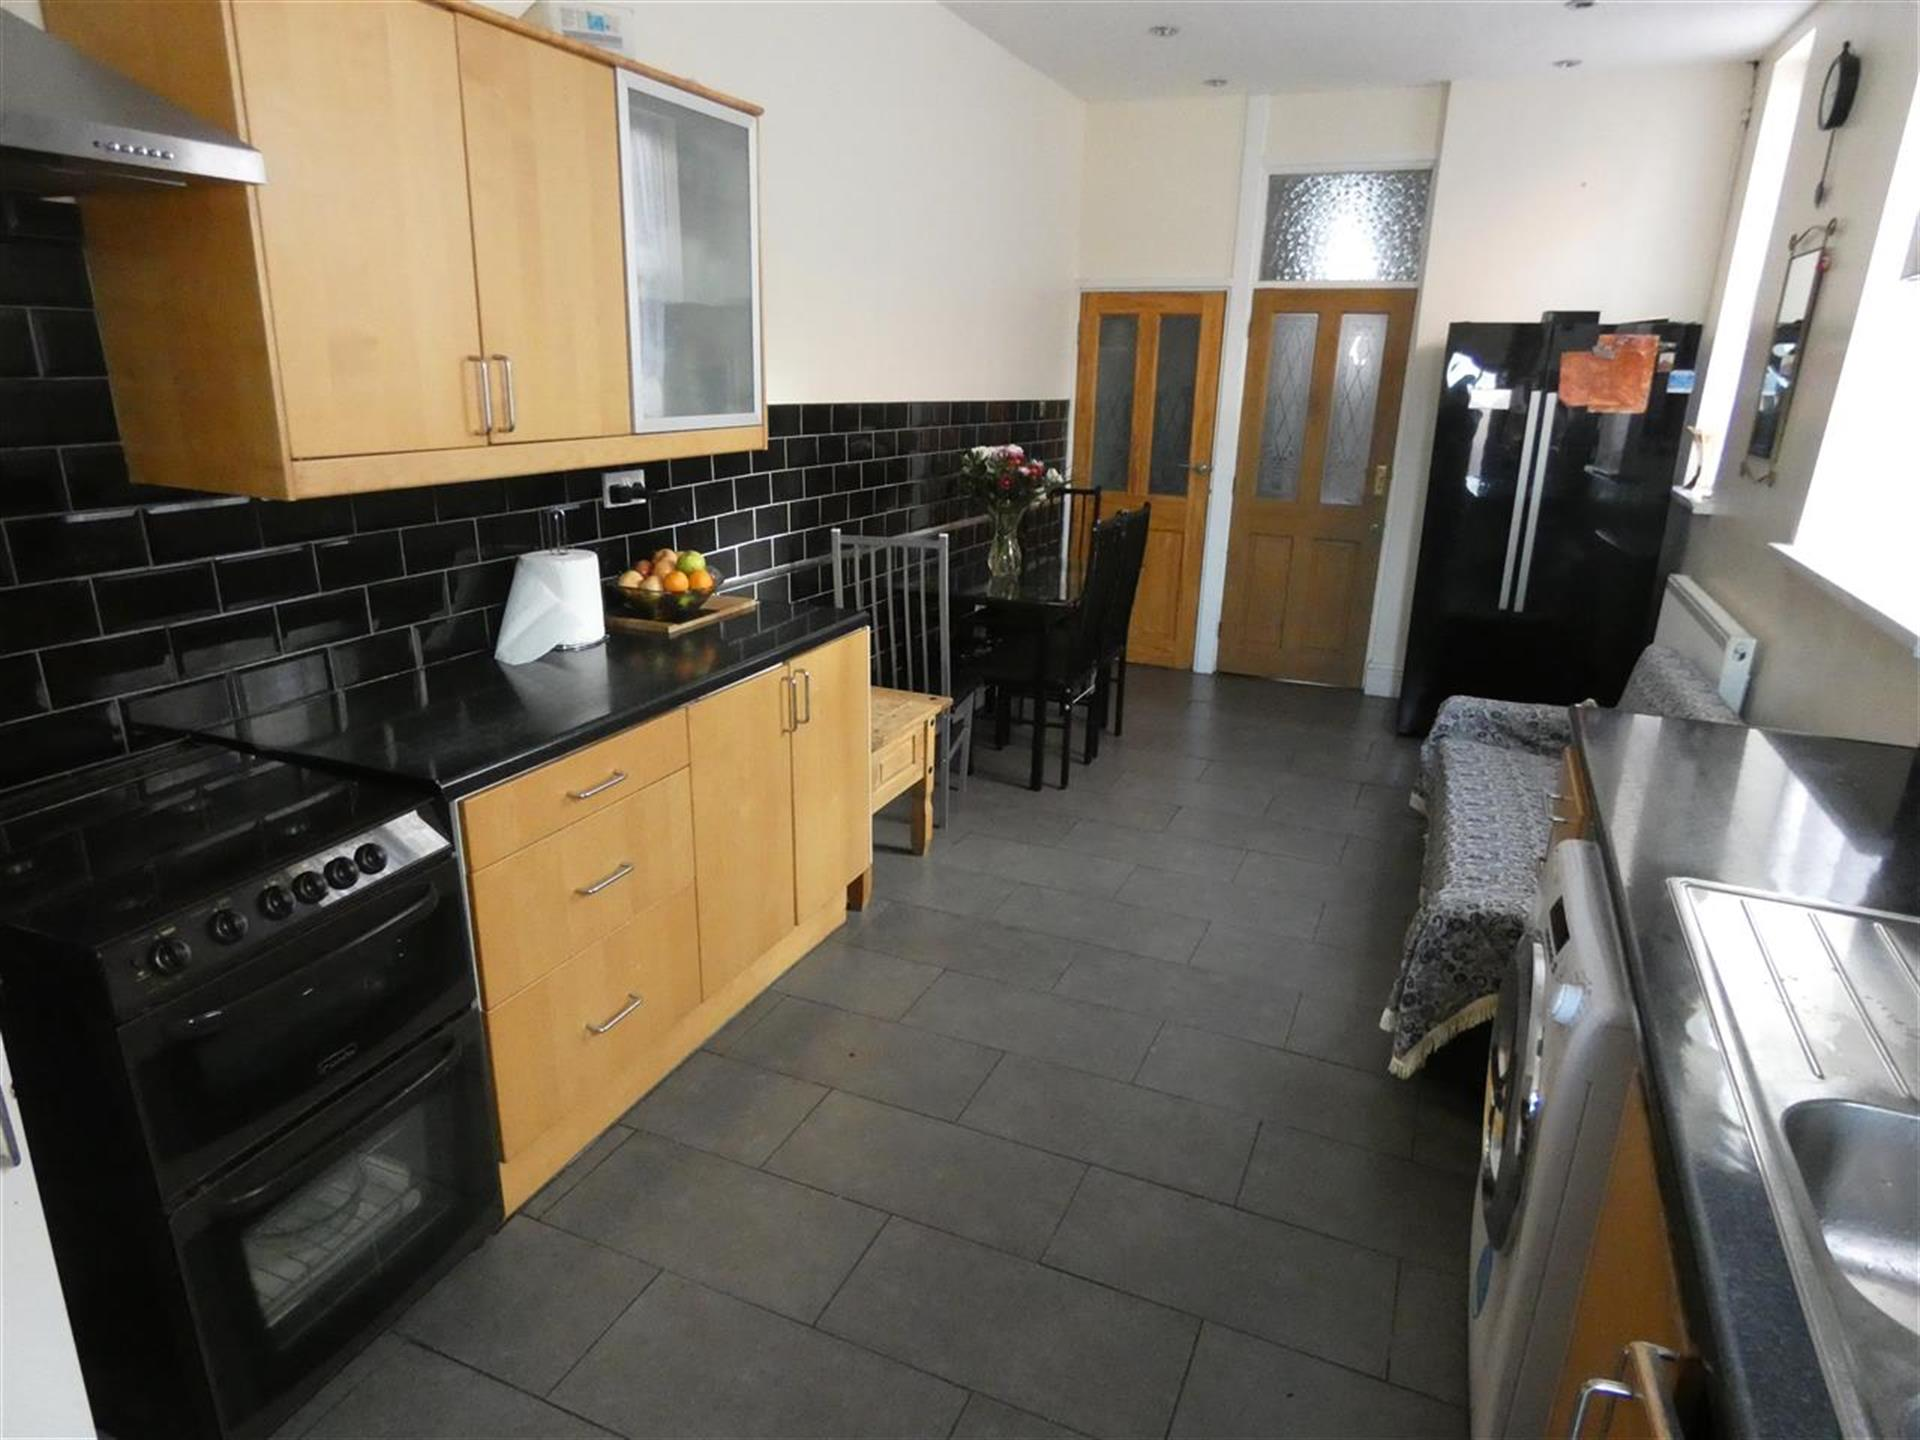 4 Bedroom Terraced House For Sale - Image 5